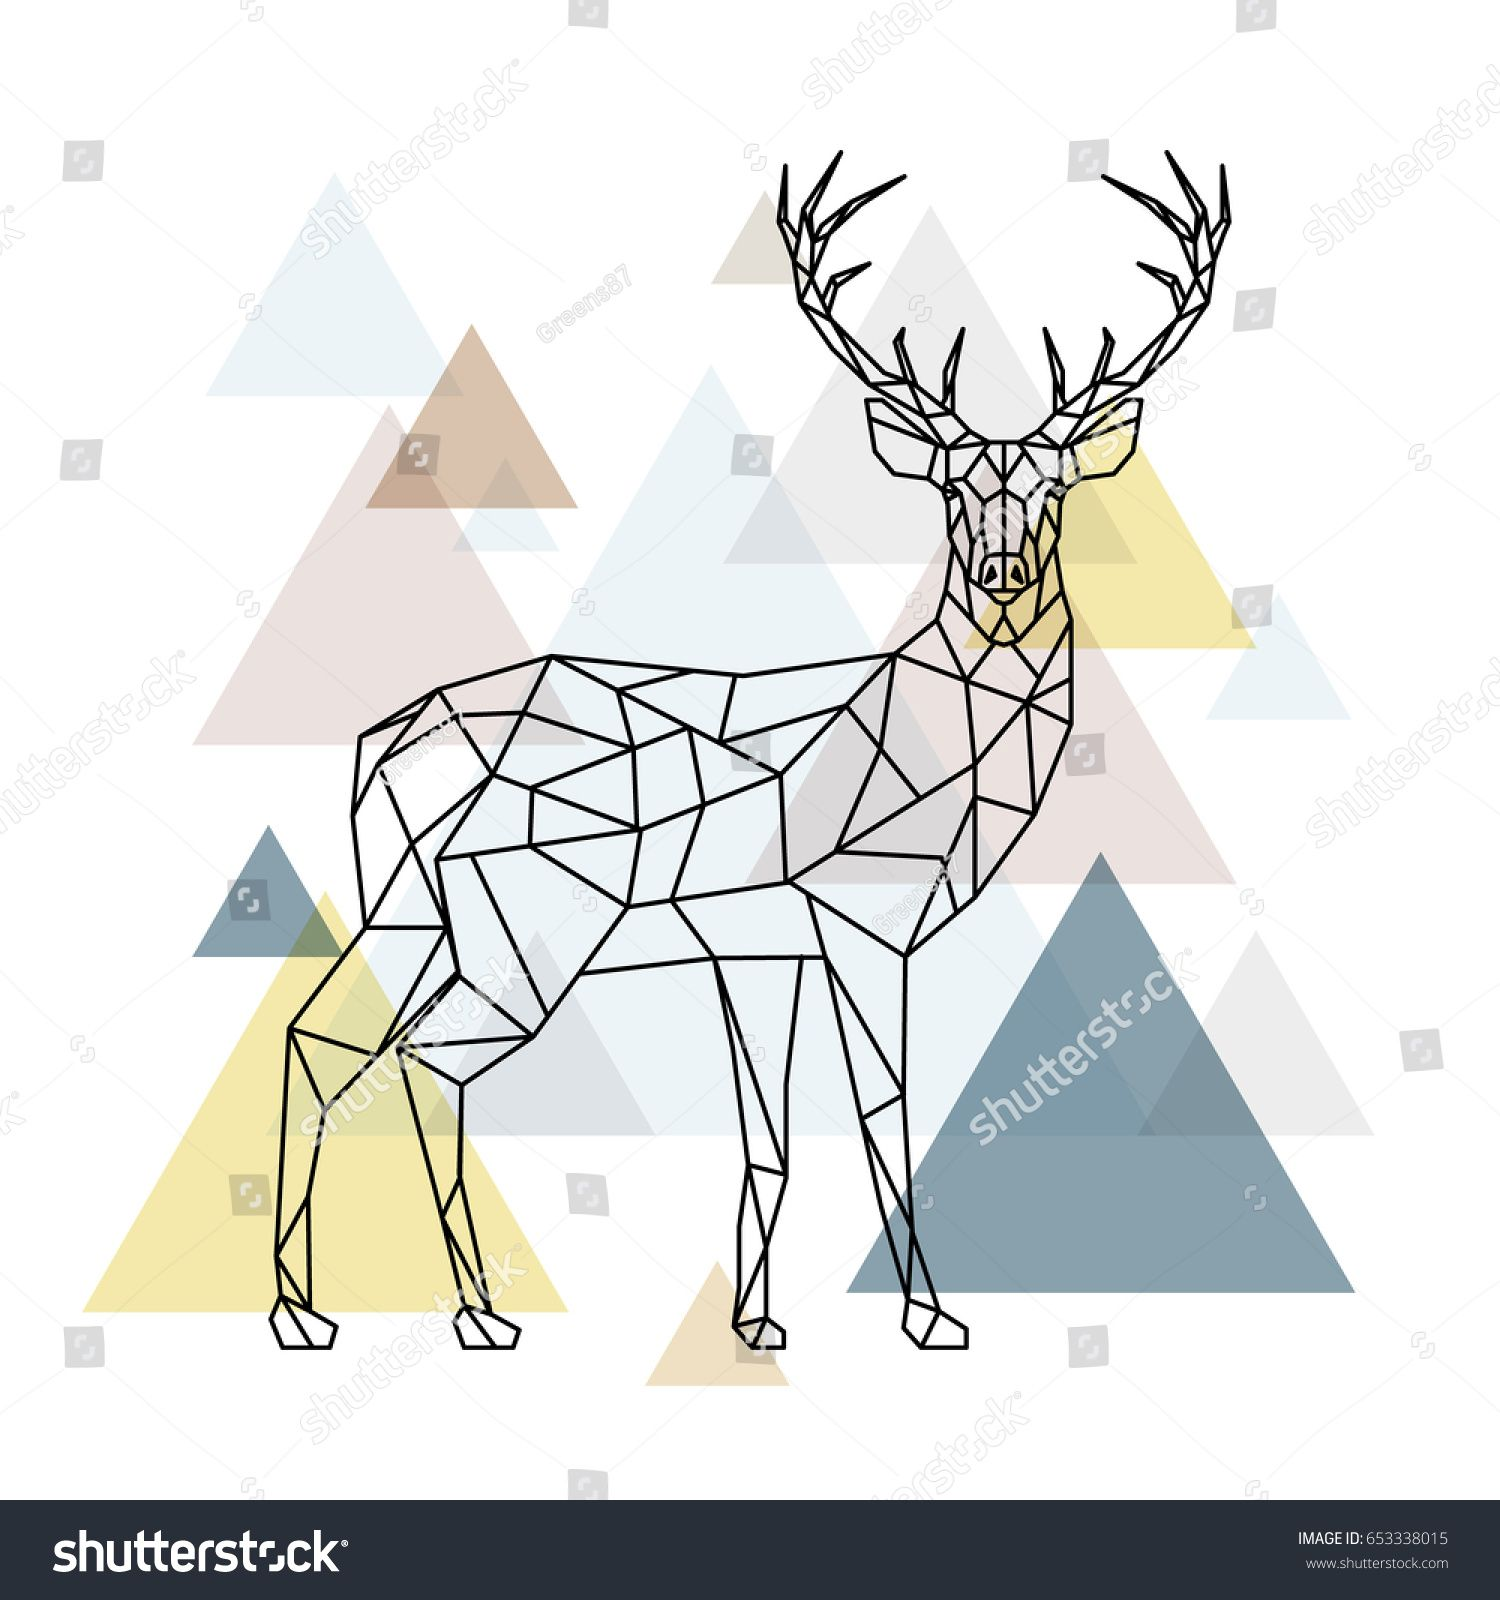 Abstract Polygonal Deer Geometric Hipster Illustration Reindeer With Side View Scandinavian Style V In 2020 Hipster Illustration Reindeer Drawing Geometric Animals